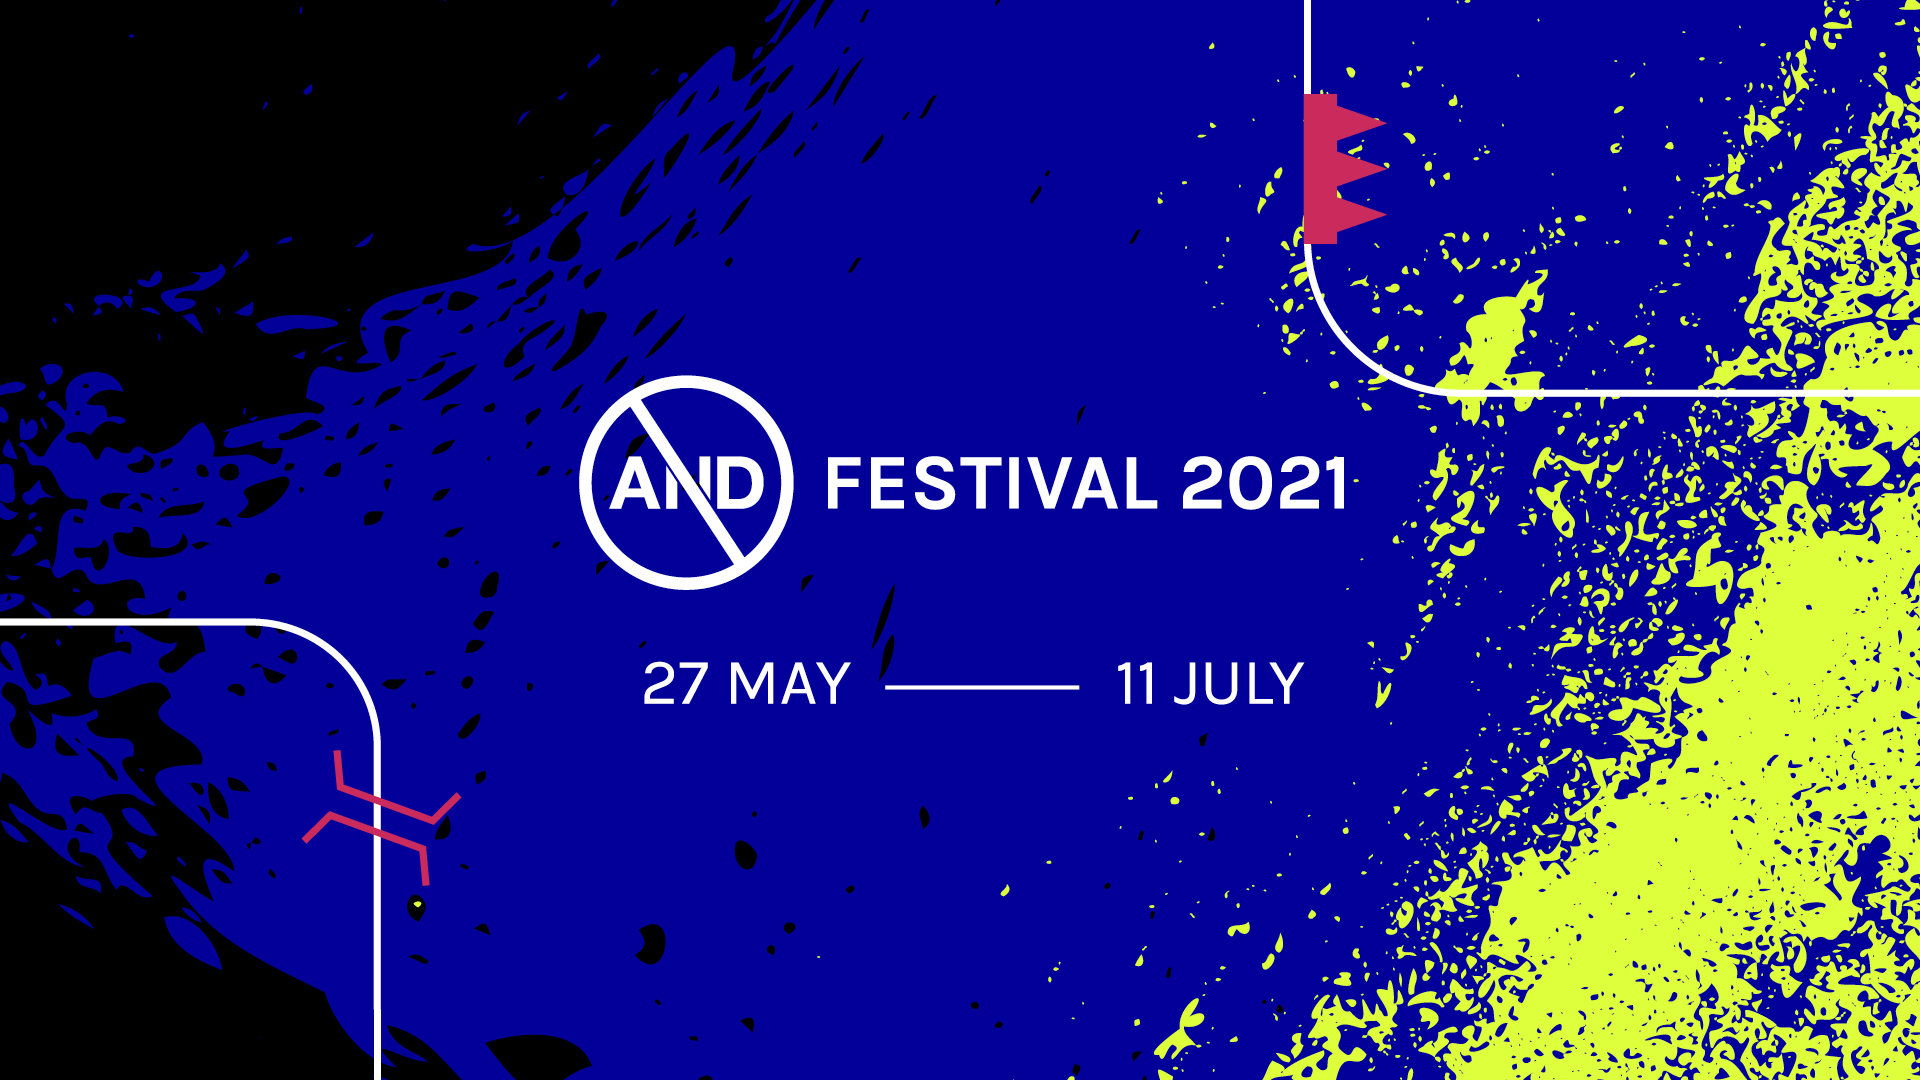 AND Festival 2021: The Daniel Adamson, Mersey Ferries, National Waterways Museum + Online